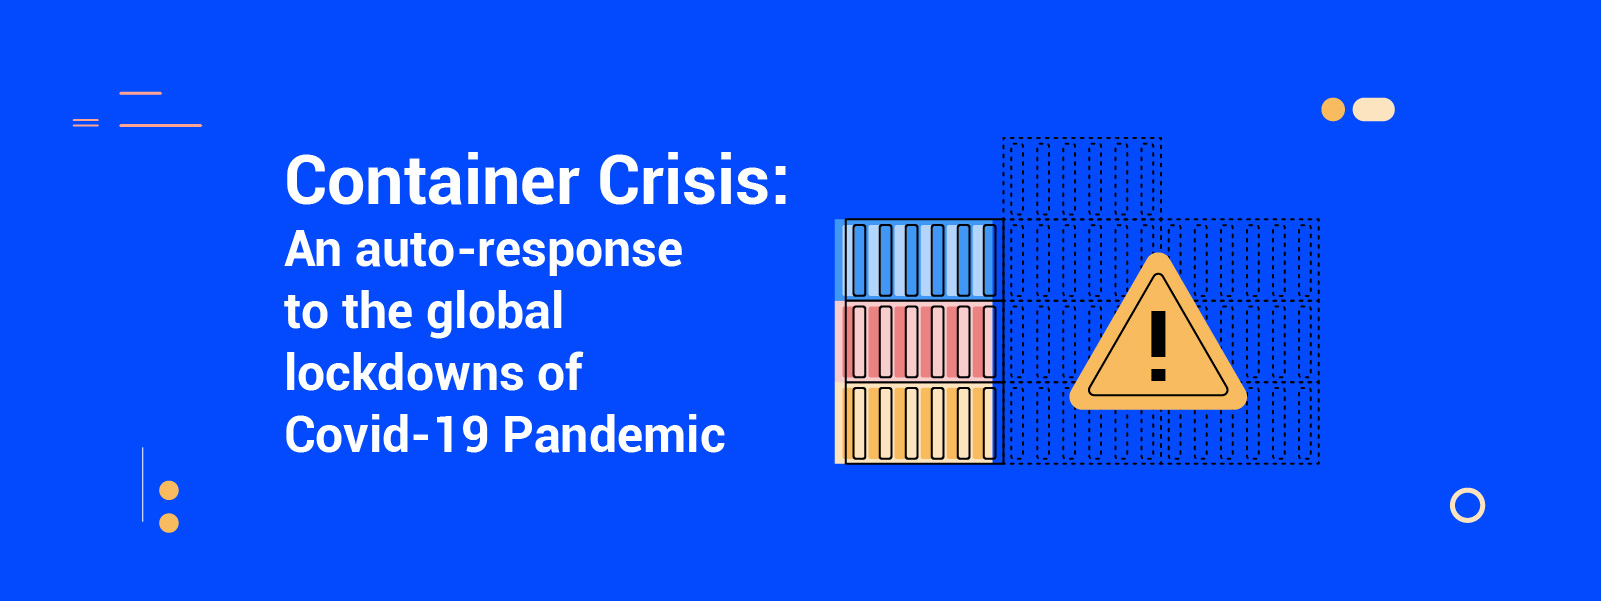 Container Crisis: An auto-response to the global lockdowns of Covid-19 Pandemic